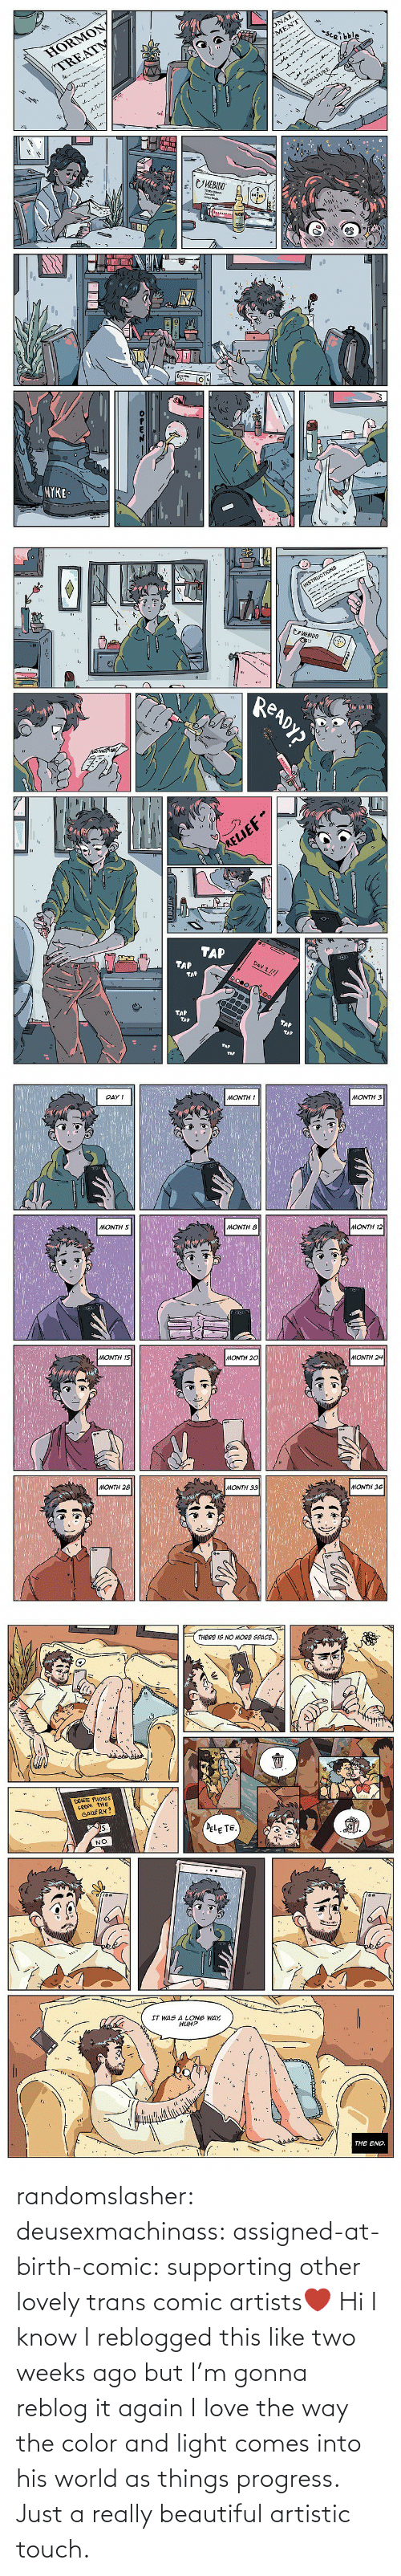 Just A: randomslasher: deusexmachinass:  assigned-at-birth-comic: supporting other lovely trans comic artists❤  Hi I know I reblogged this like two weeks ago but I'm gonna reblog it again  I love the way the color and light comes into his world as things progress. Just a really beautiful artistic touch.